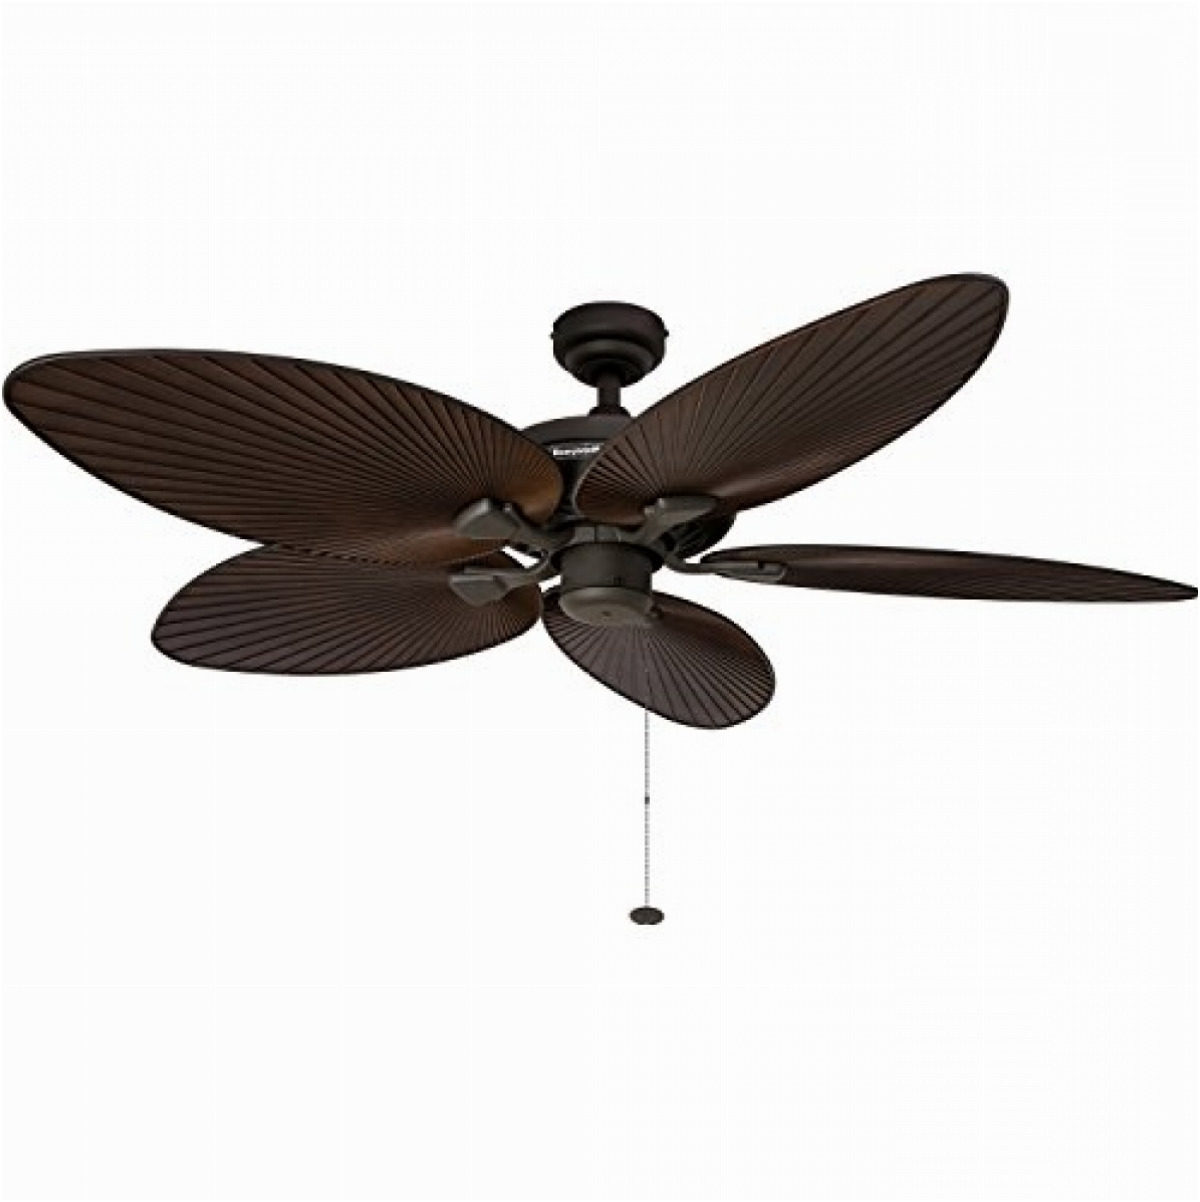 "Leaf Blades Outdoor Ceiling Fans Pertaining To Well Known 52"" Tropical Ceiling Fan Five Palm Leaf Blades Indoor/outdoor Damp (View 17 of 20)"